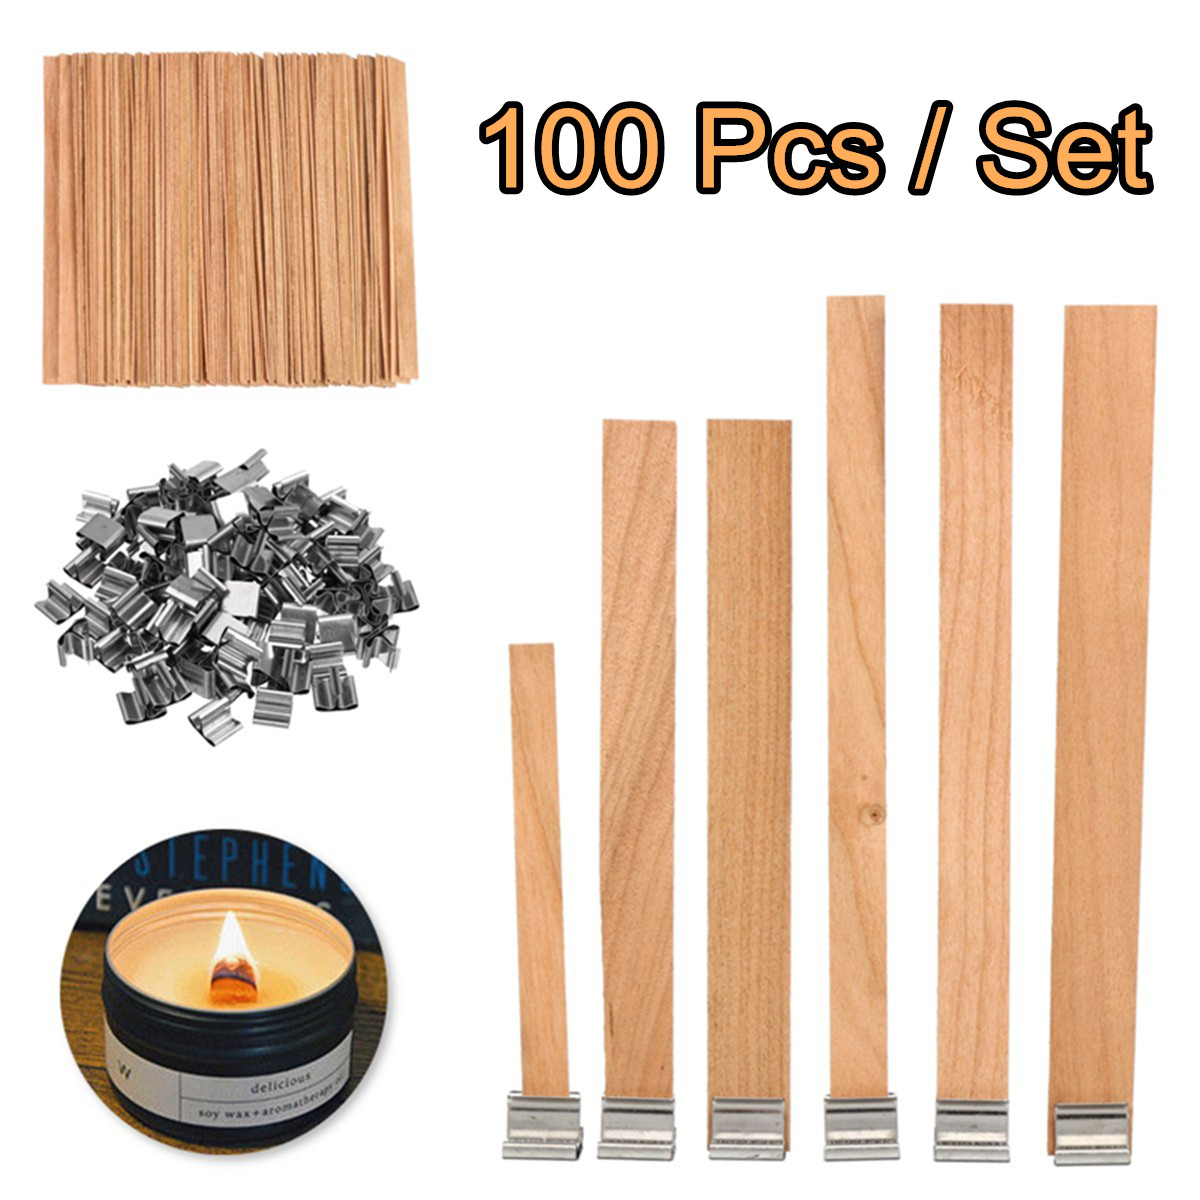 8mm 12.5mm 13mm 15mm Wooden Candles Wick With Sustainer Tab Candle Wick Core For Candle Making Supply Soy Parffin Wax 100Pcs